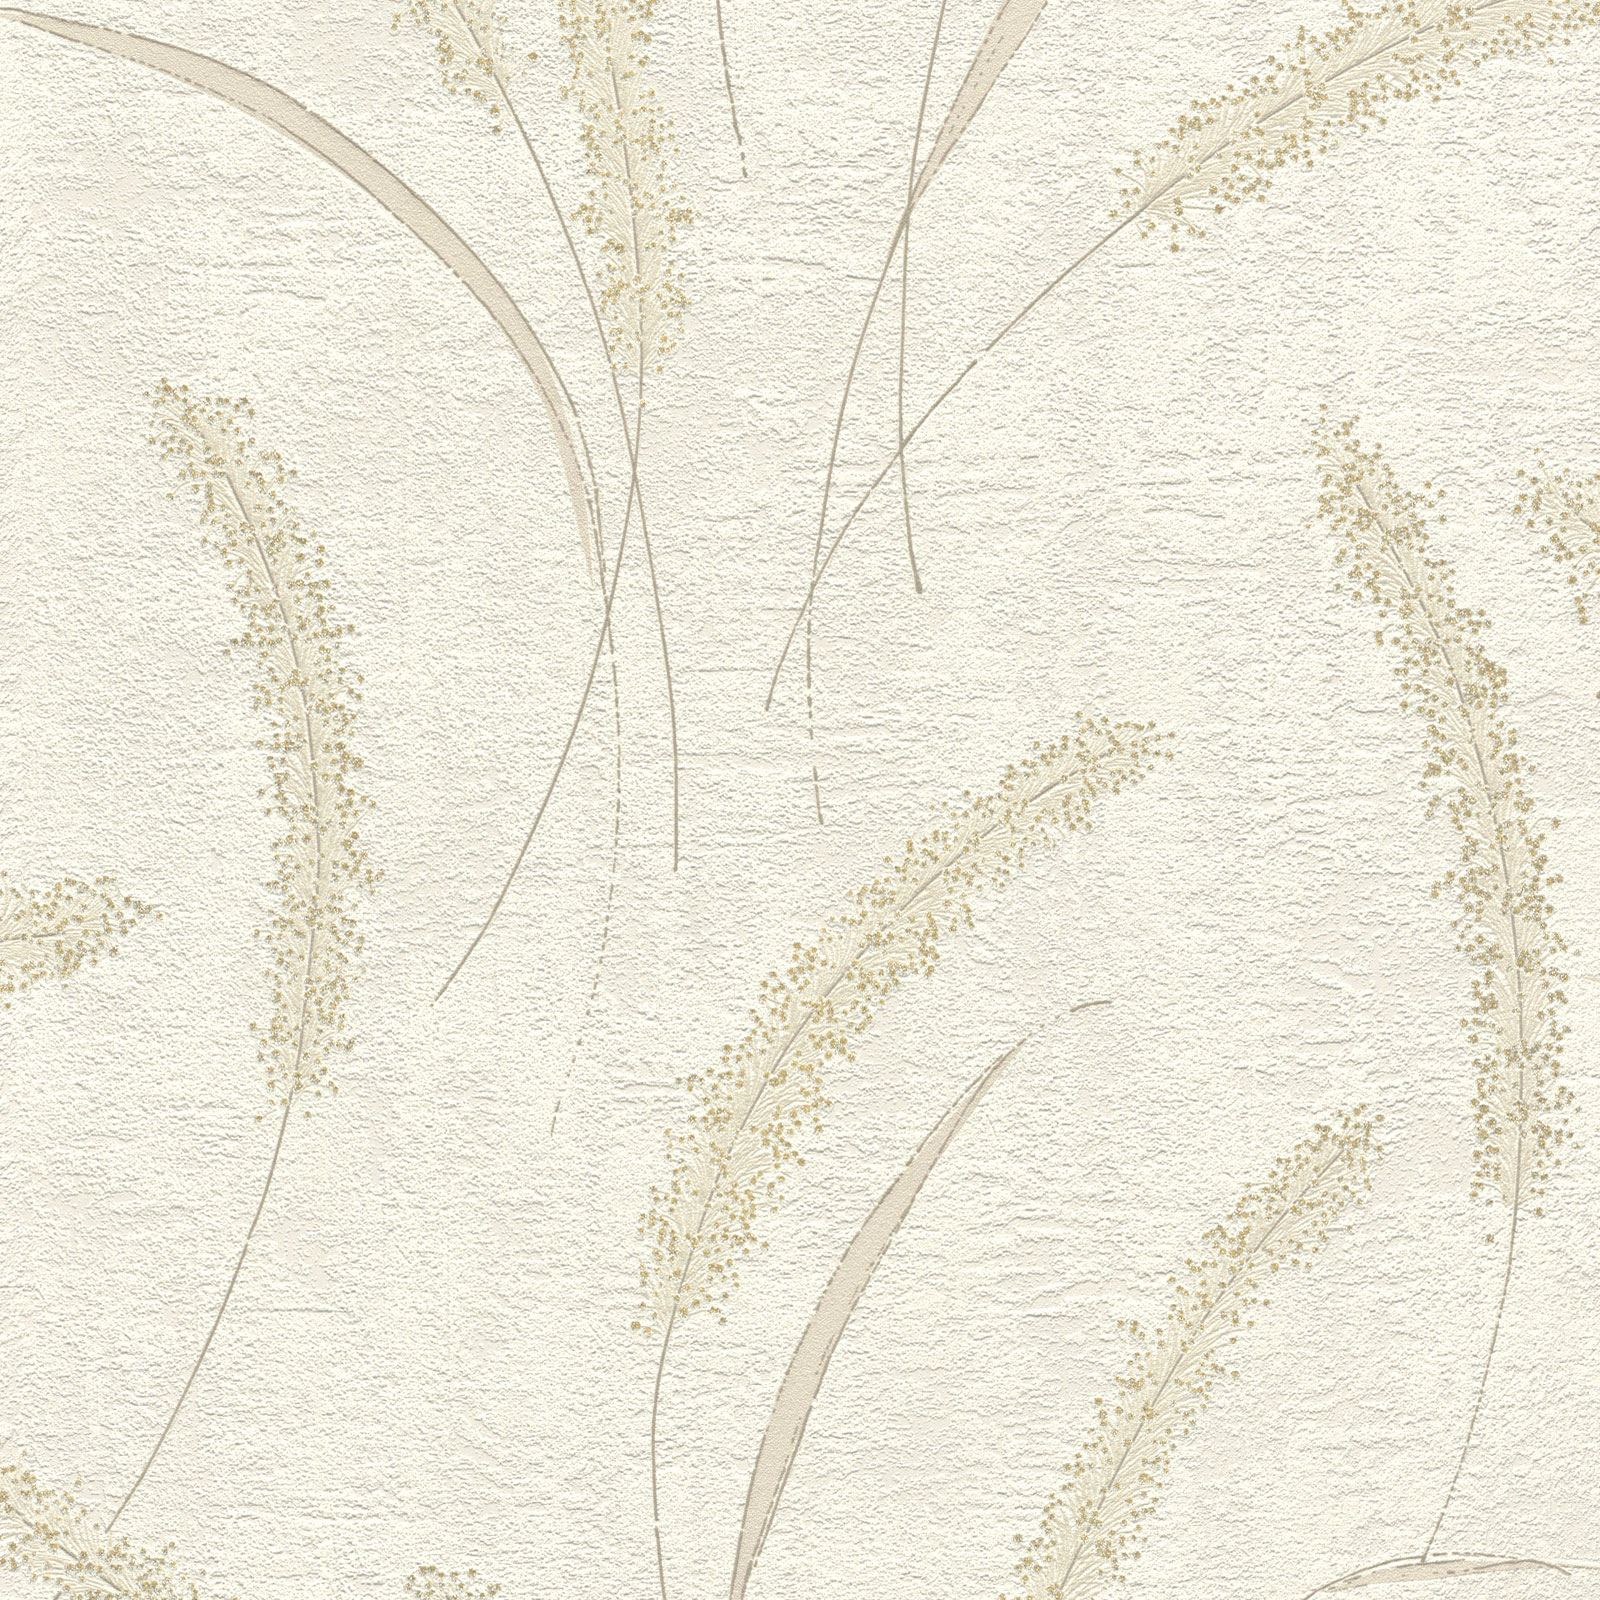 Glitter Floral Wallpaper Reed Like Flowers Taupe White Rasch